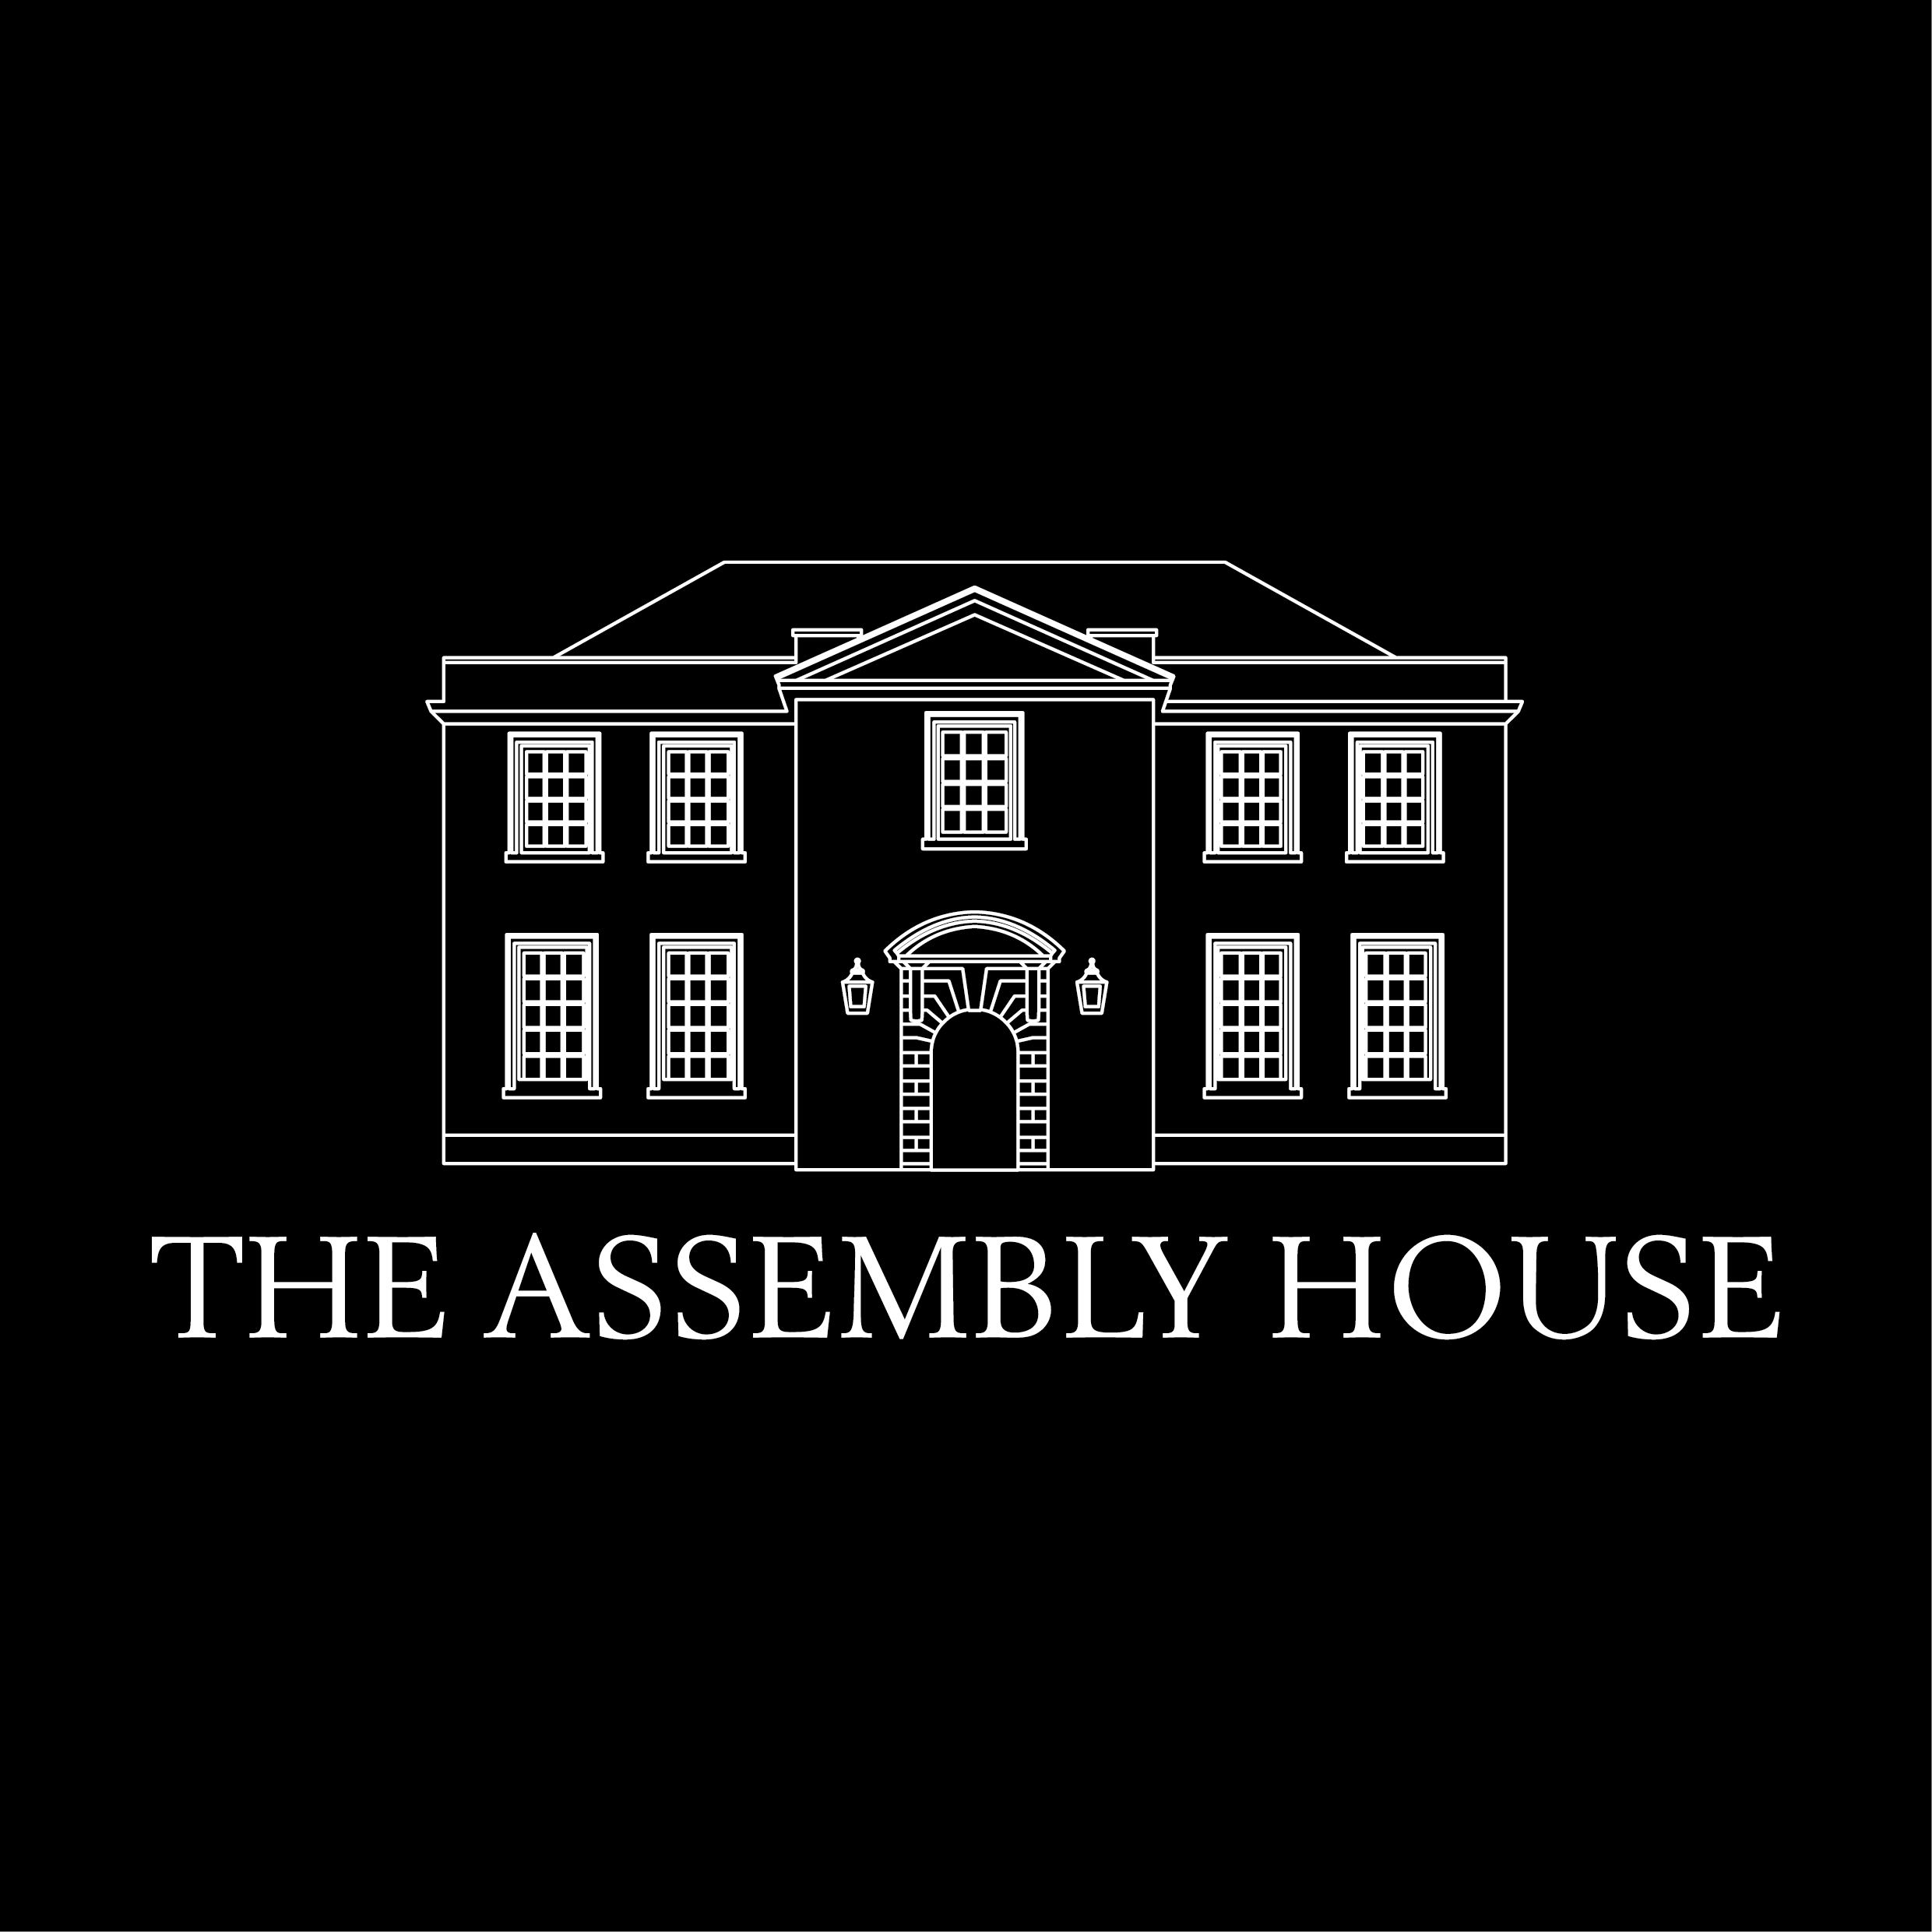 The Assembly House logo